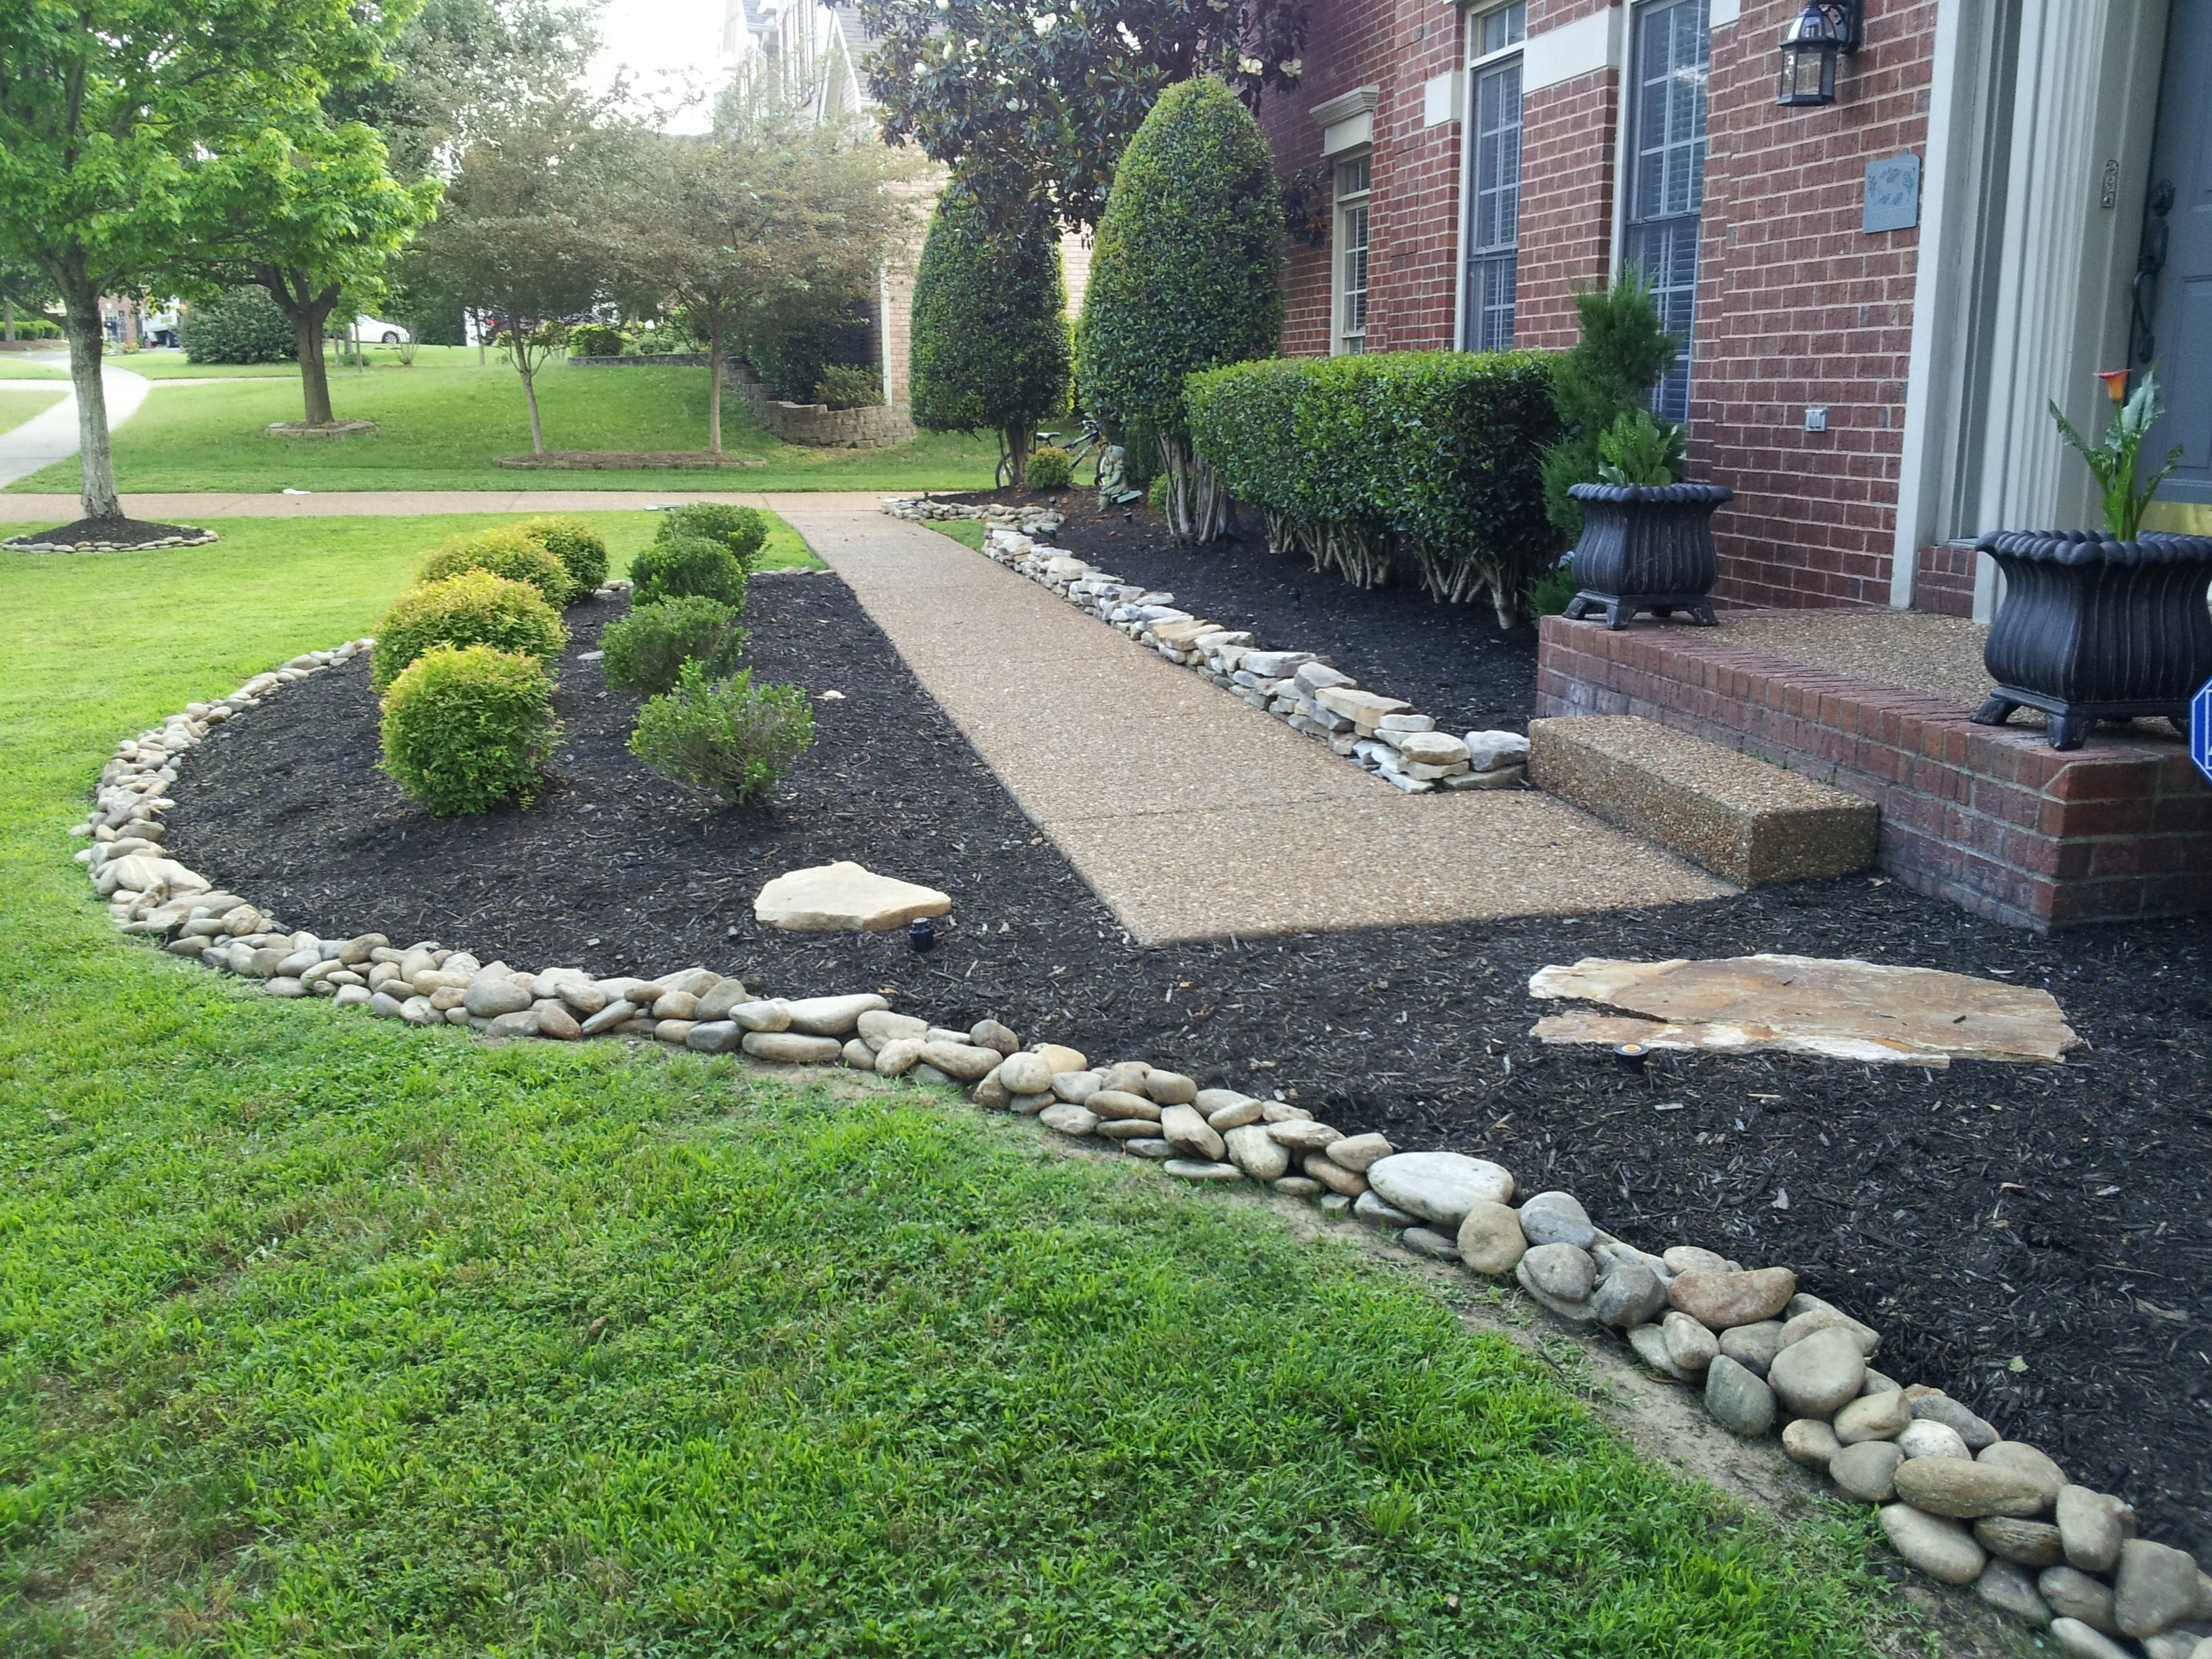 17 Best ideas about Landscaping Rocks on Pinterest Rock yard